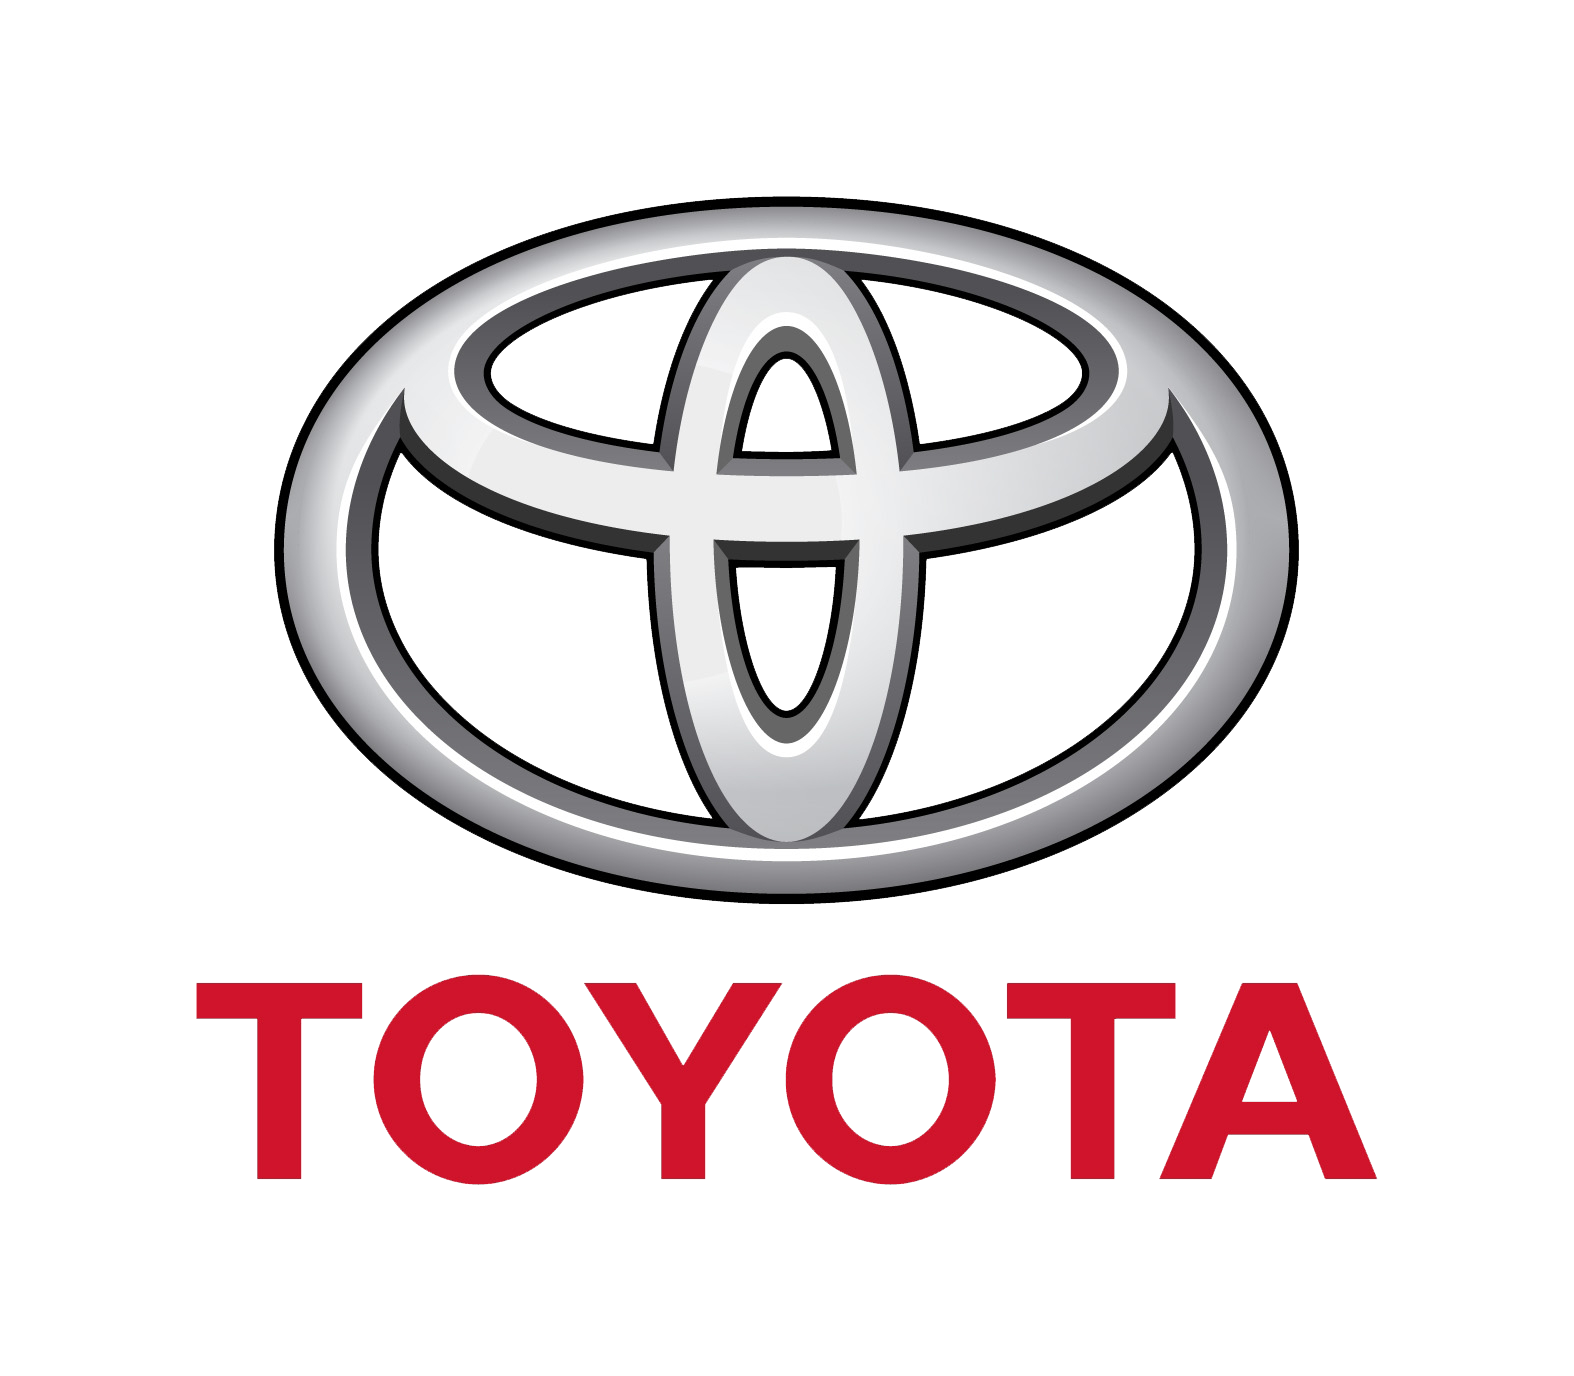 Toyota logo png. Transparent images all clipart